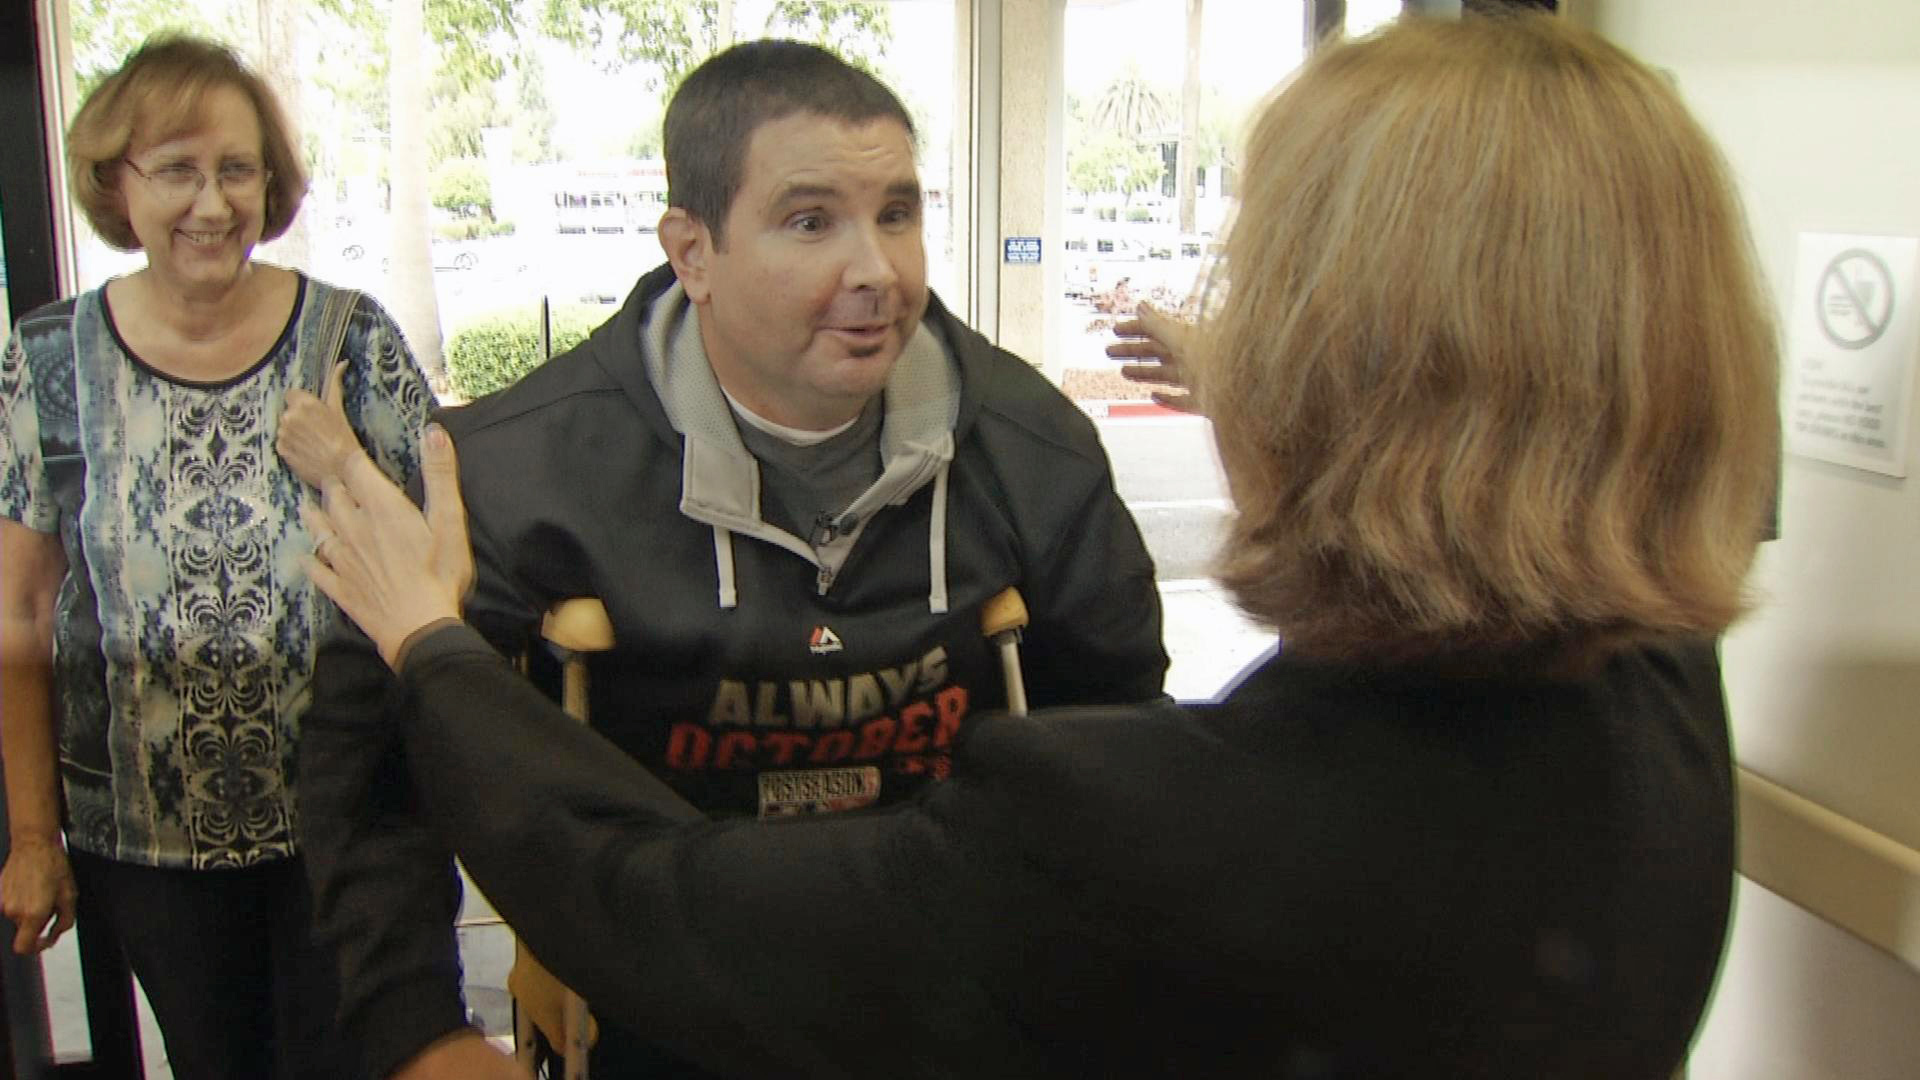 Bryan Stow returned to Valley Medical Center in San Jose to thank the caregivers who helped save his life, Wednesday, June 10, 2015.